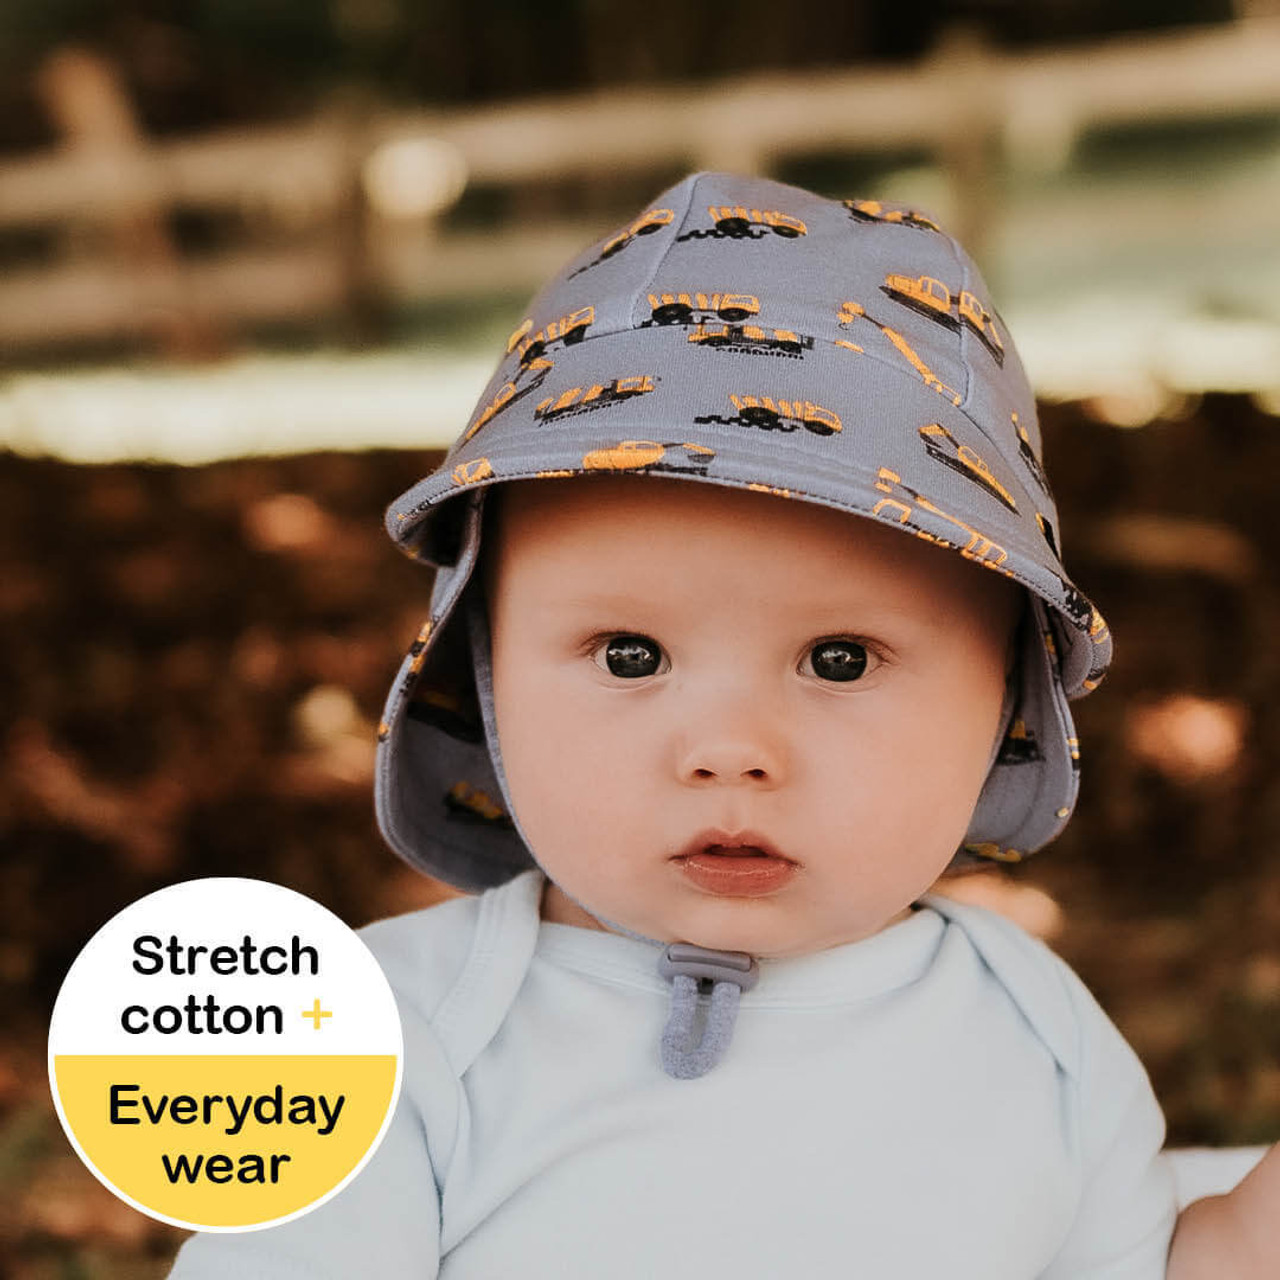 Bedhead Legionnaire Flap Hat - Machinery at Baby Barn Discounts Find us a child who doesn't like diggers, dumpers and mixer trucks! With a neutral grey background and yellow trucks - this is the perfect hat to try out on kids who aren't too keen to keep hats on heads!